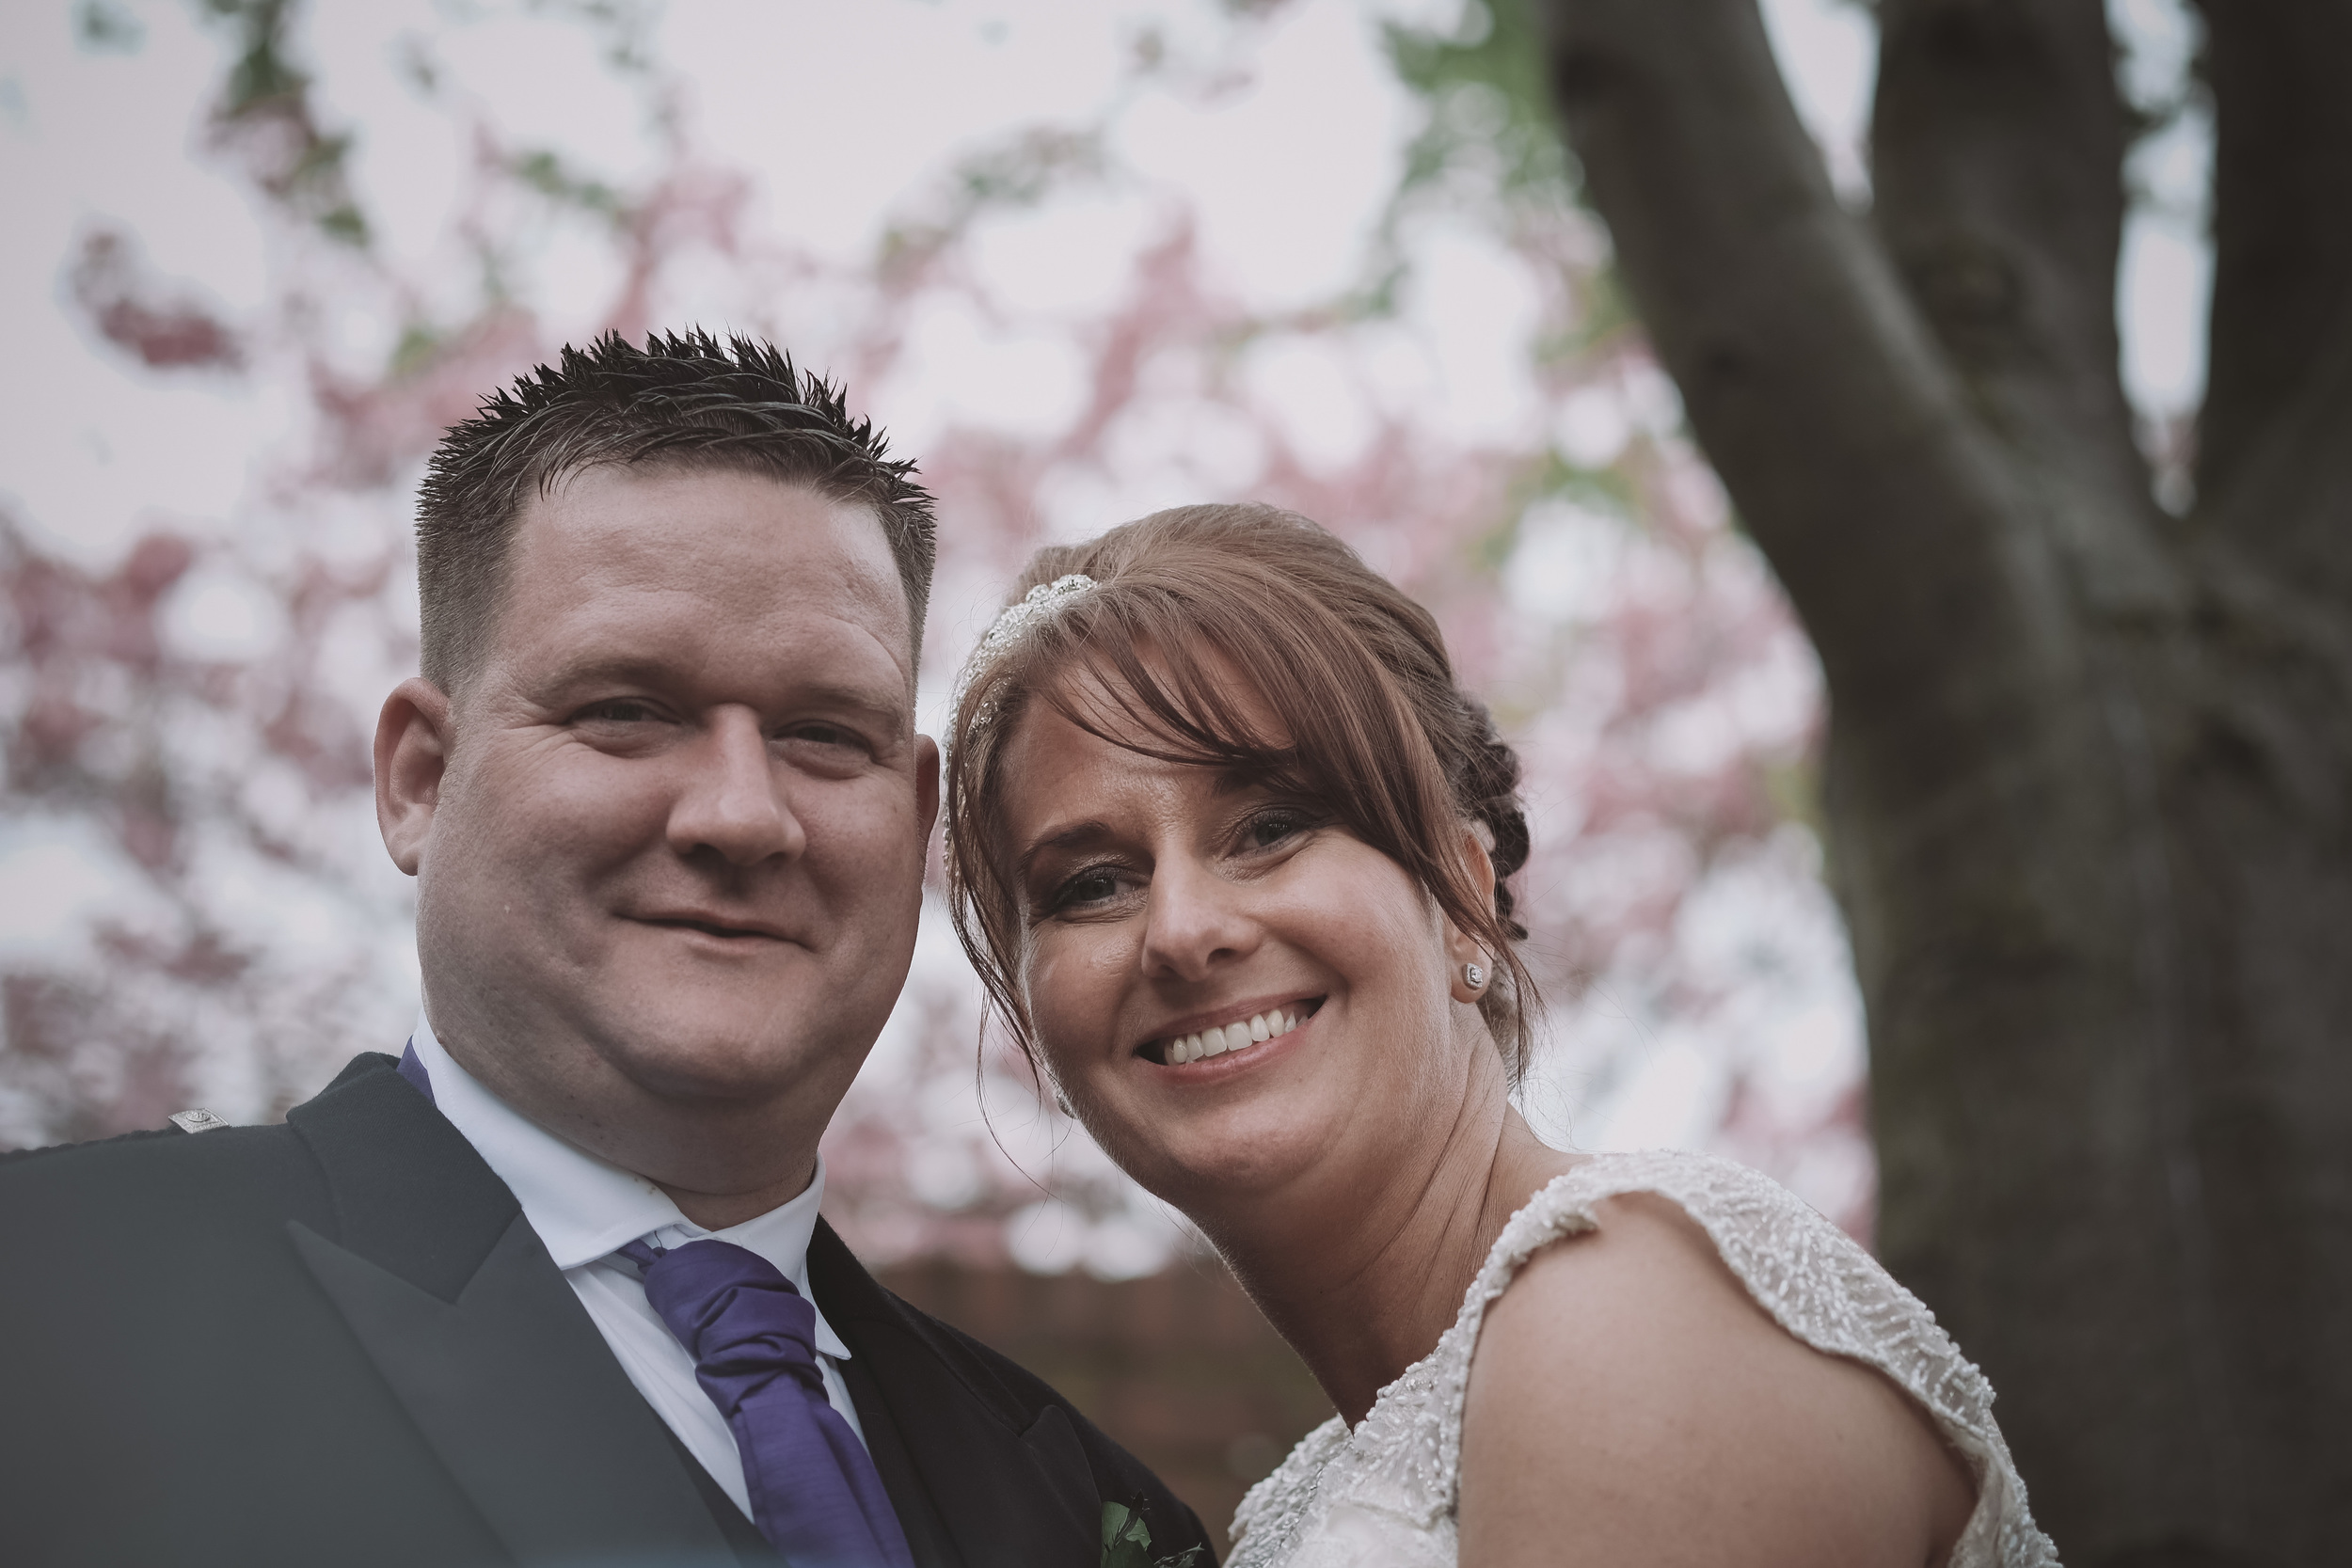 Newcastle Wedding Photographer // Close up portrait of bride and groom